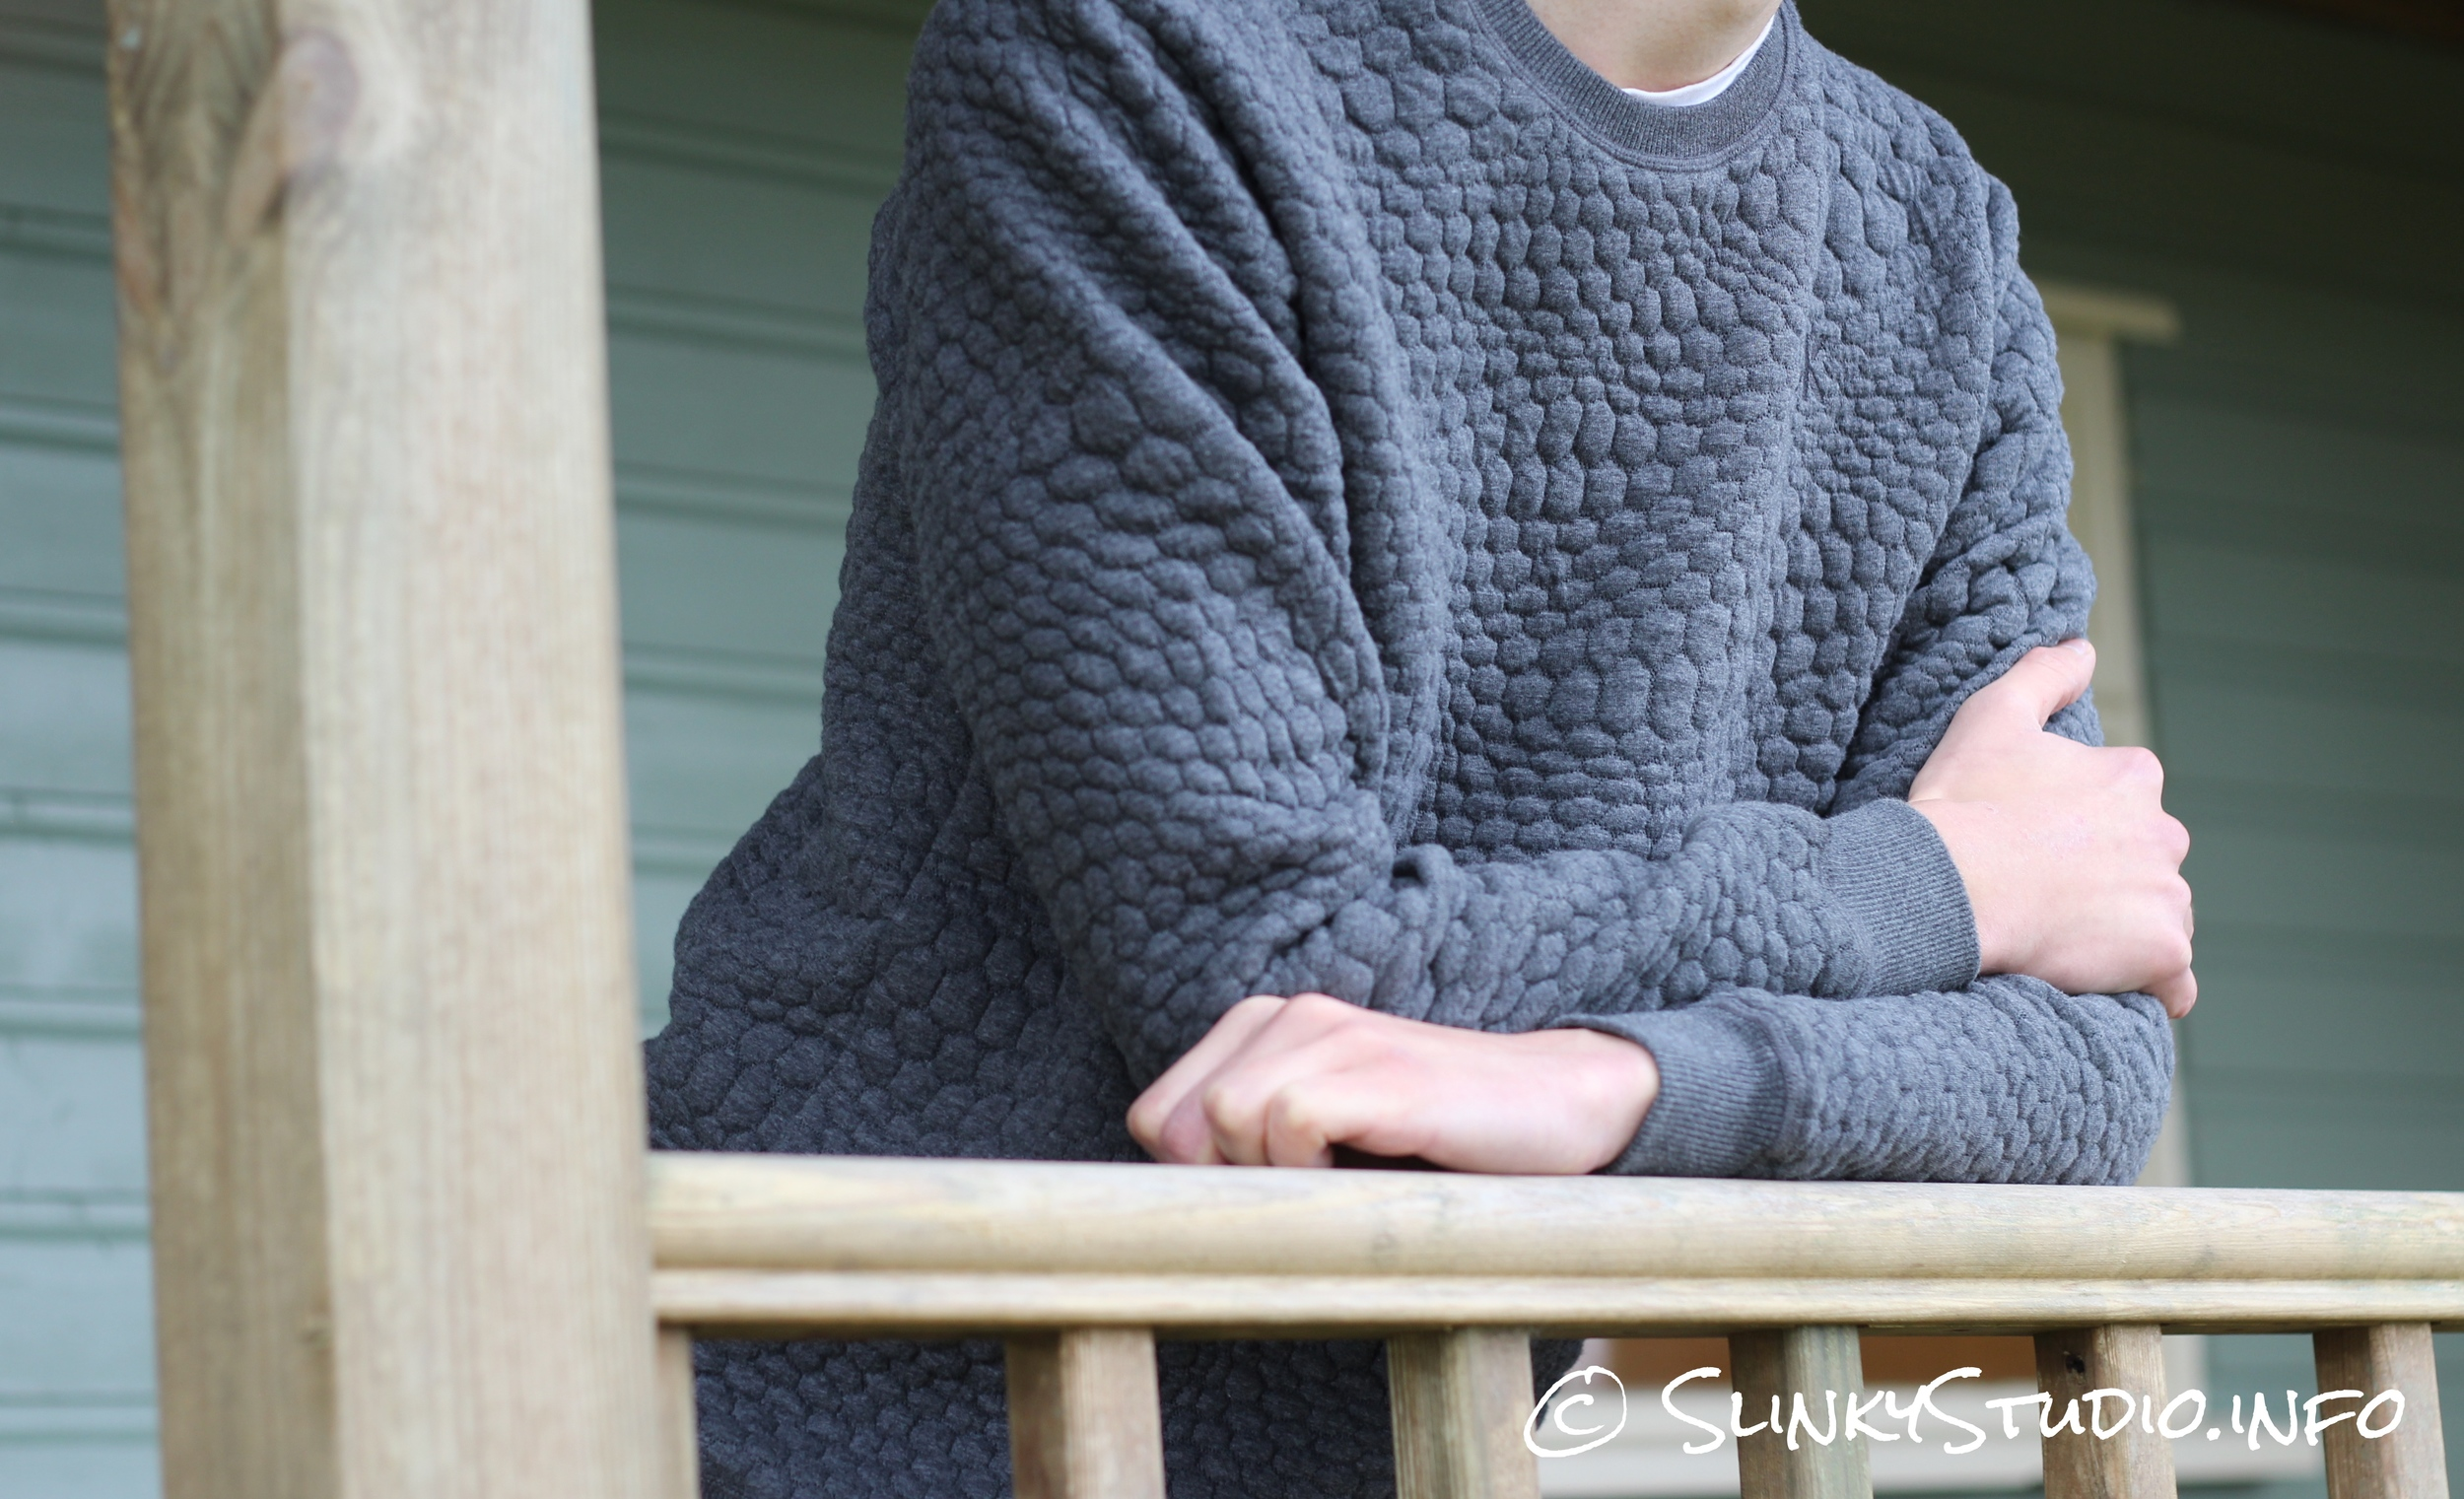 OnePiece London College Sweater Crossed Arms Leaning